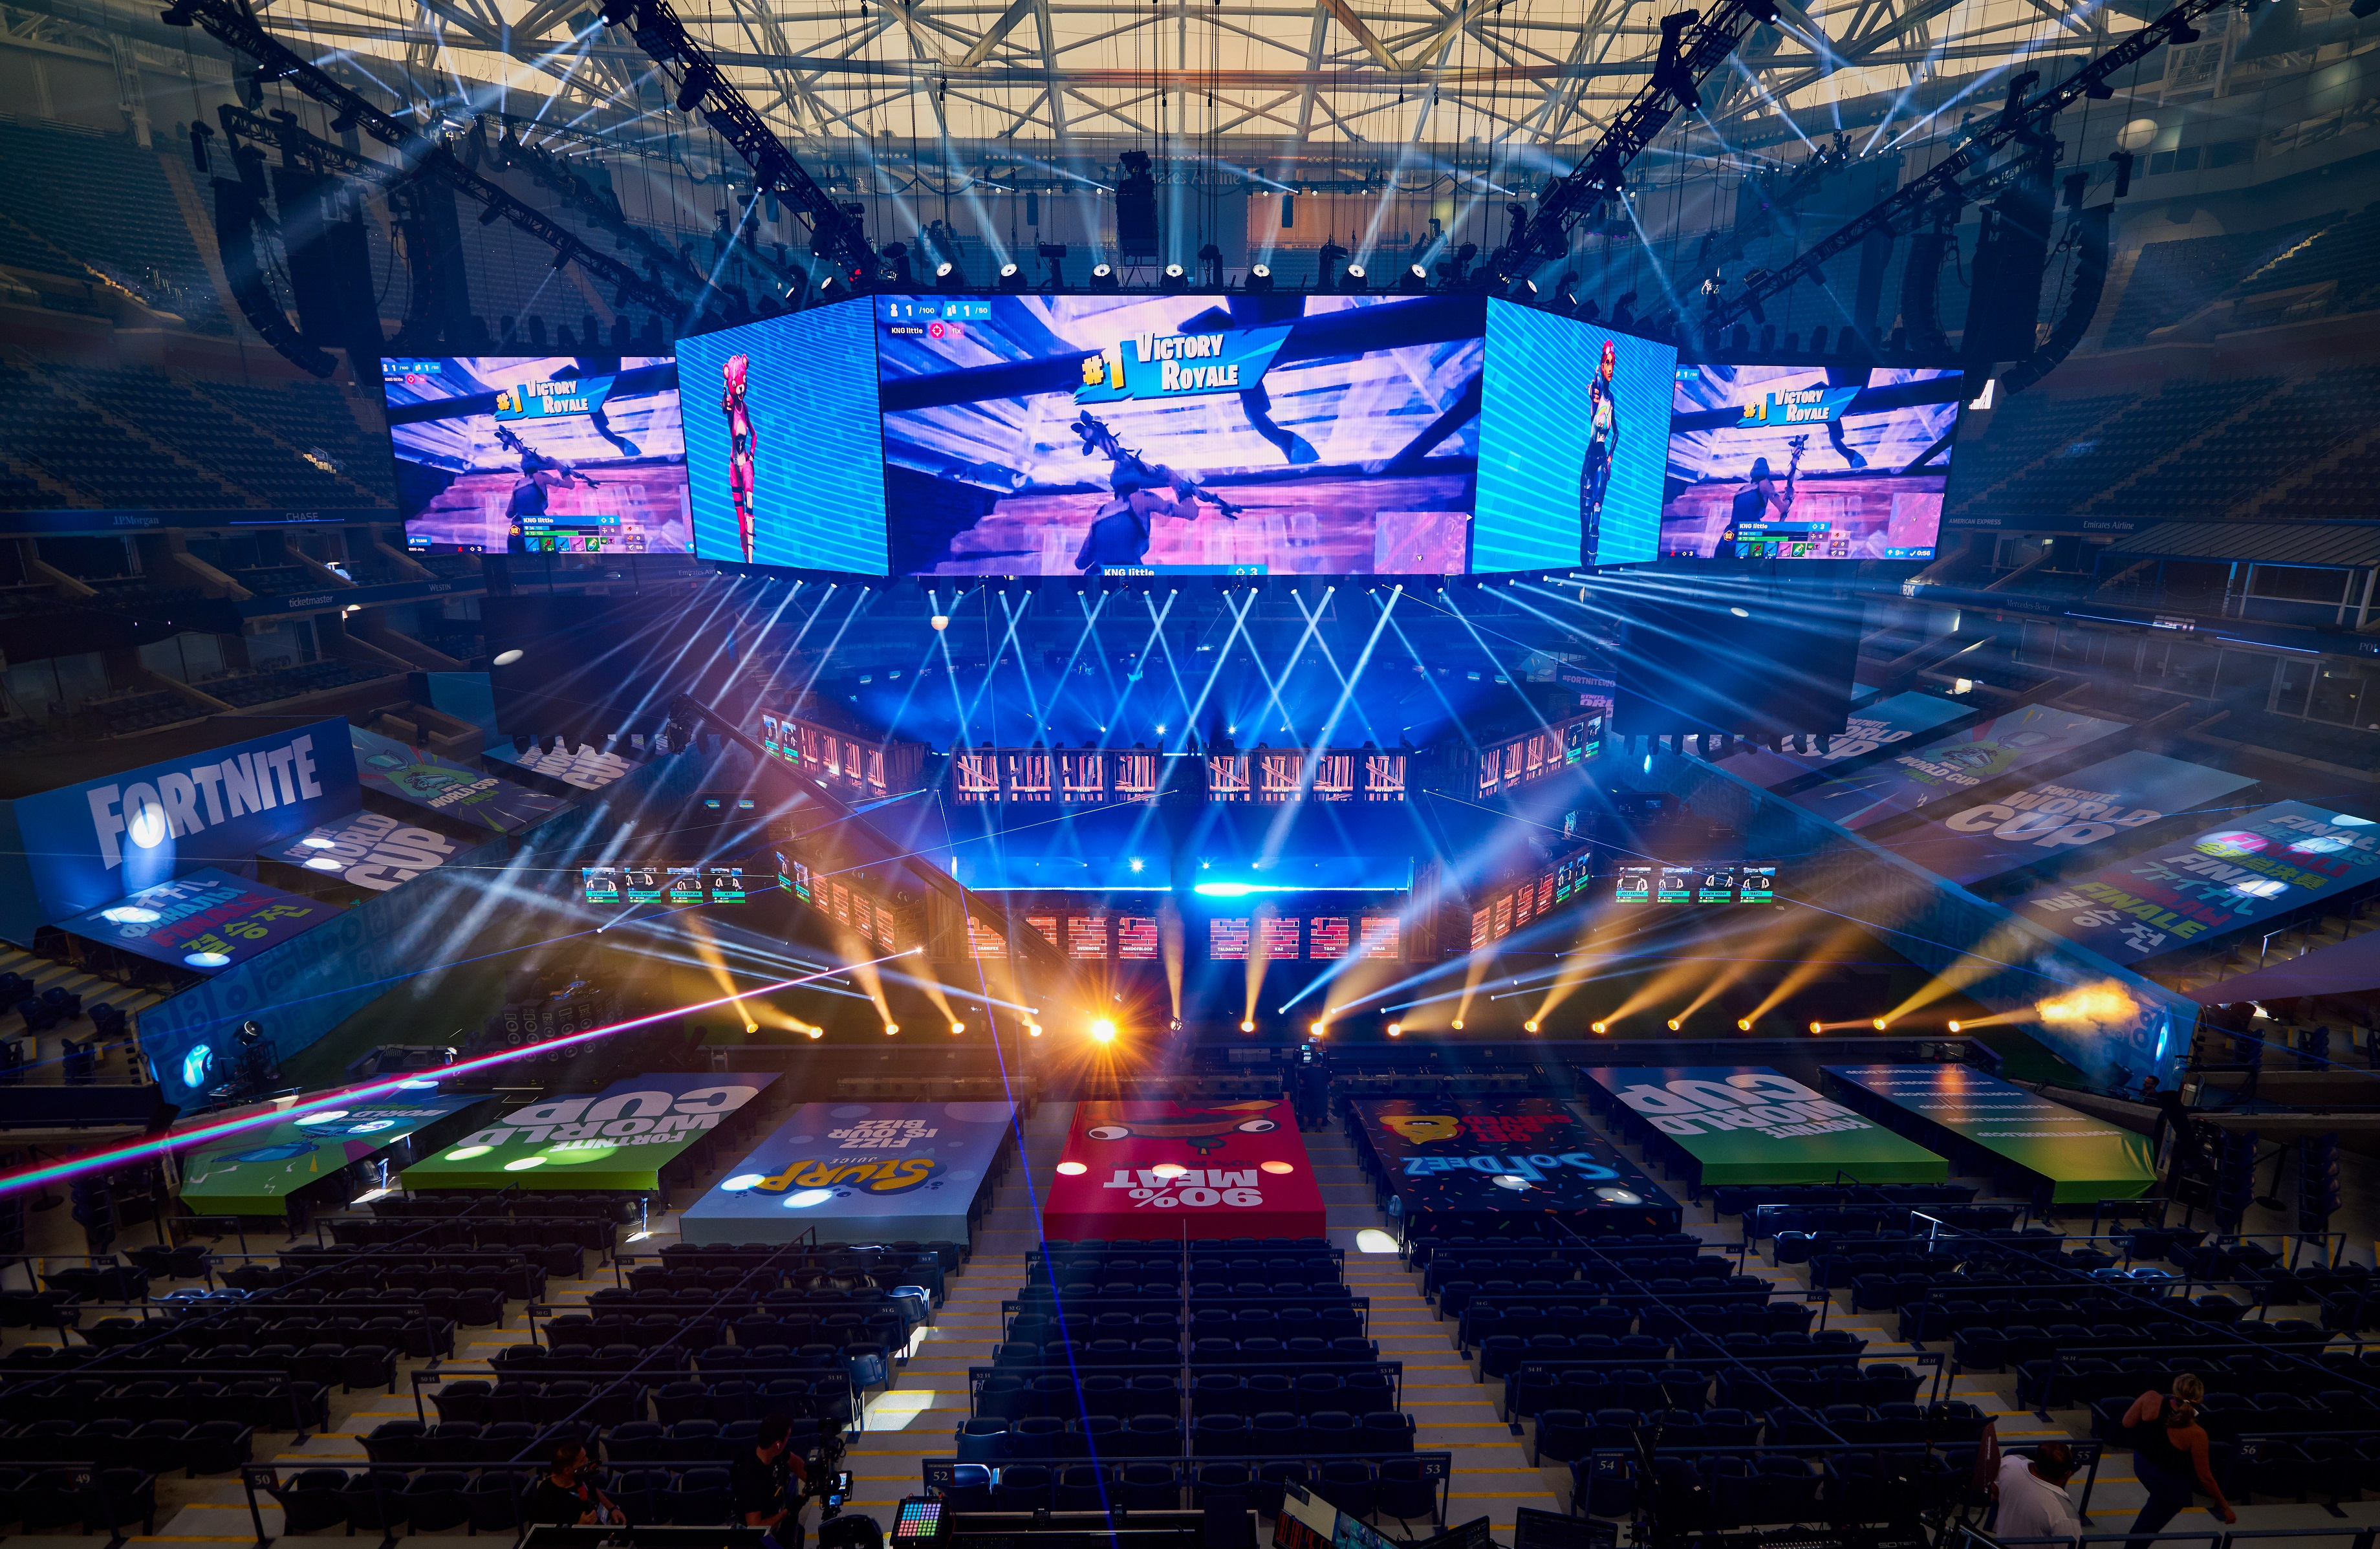 The Arthur Ashe Stadium in New York hosts the Fortnite World Cup finals